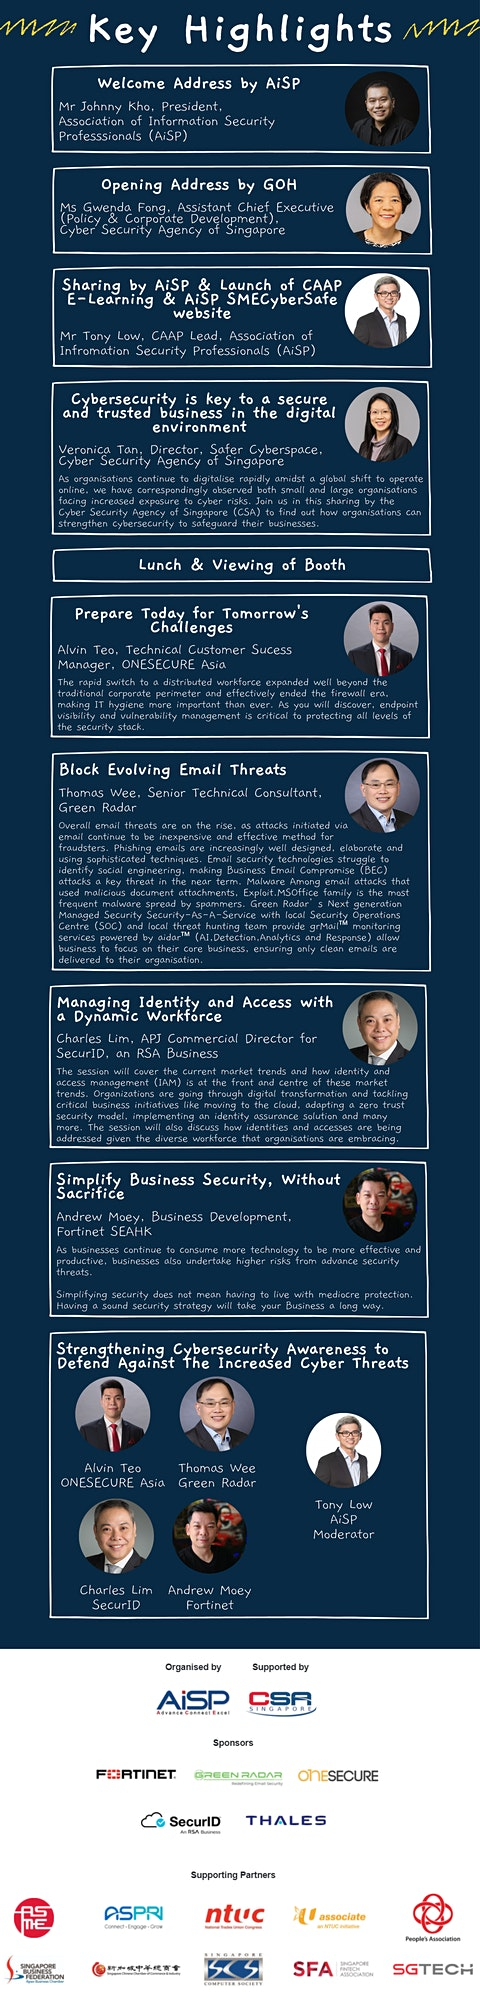 SME Cybersecurity Conference image